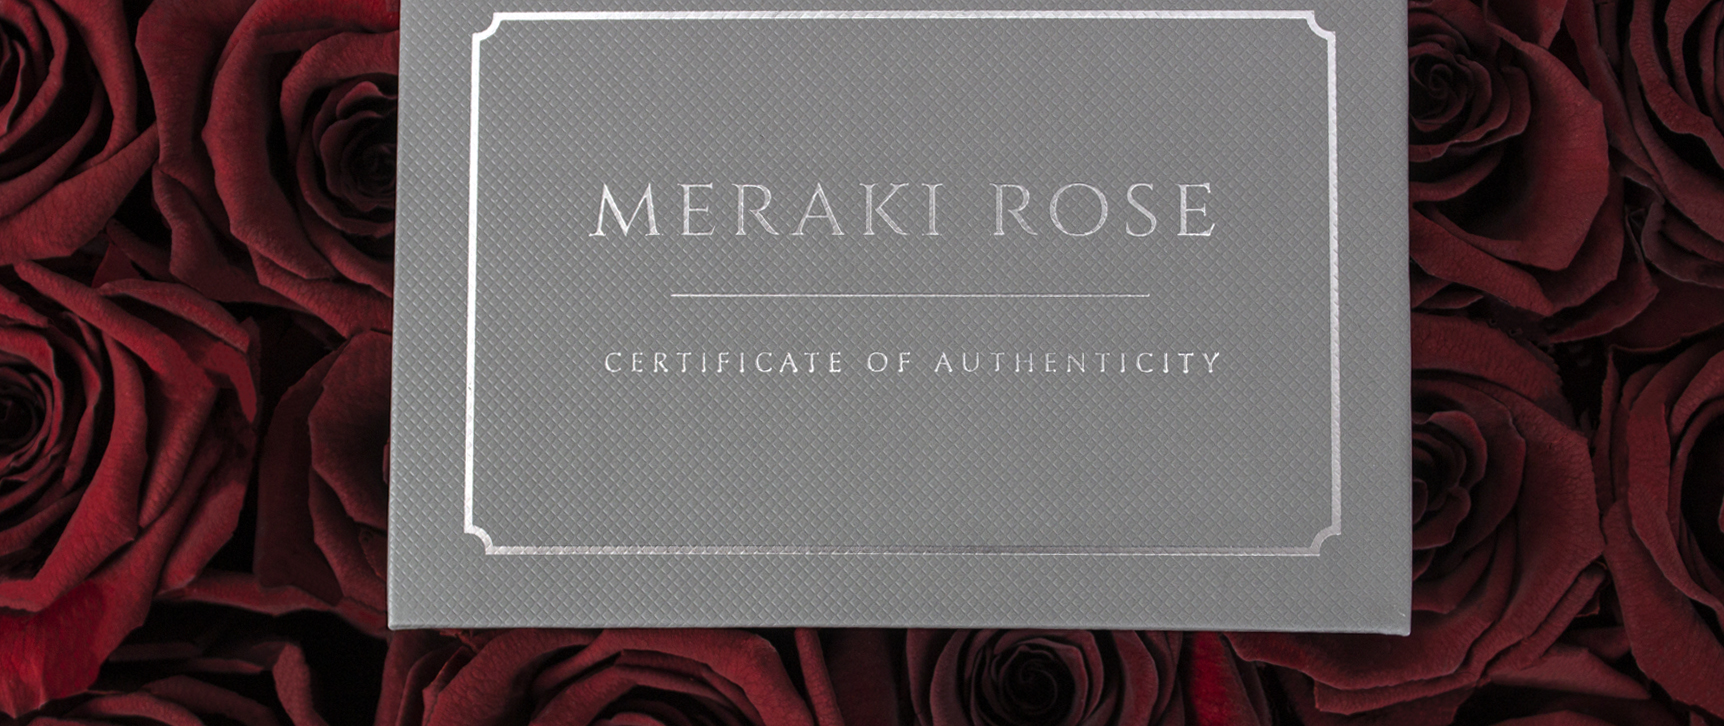 Love Certificate - Each Meraki Rose Box is made to order. Your Love Certificate certifies that we carefully examine and package each order to ensure it meets the quality standards of our company.